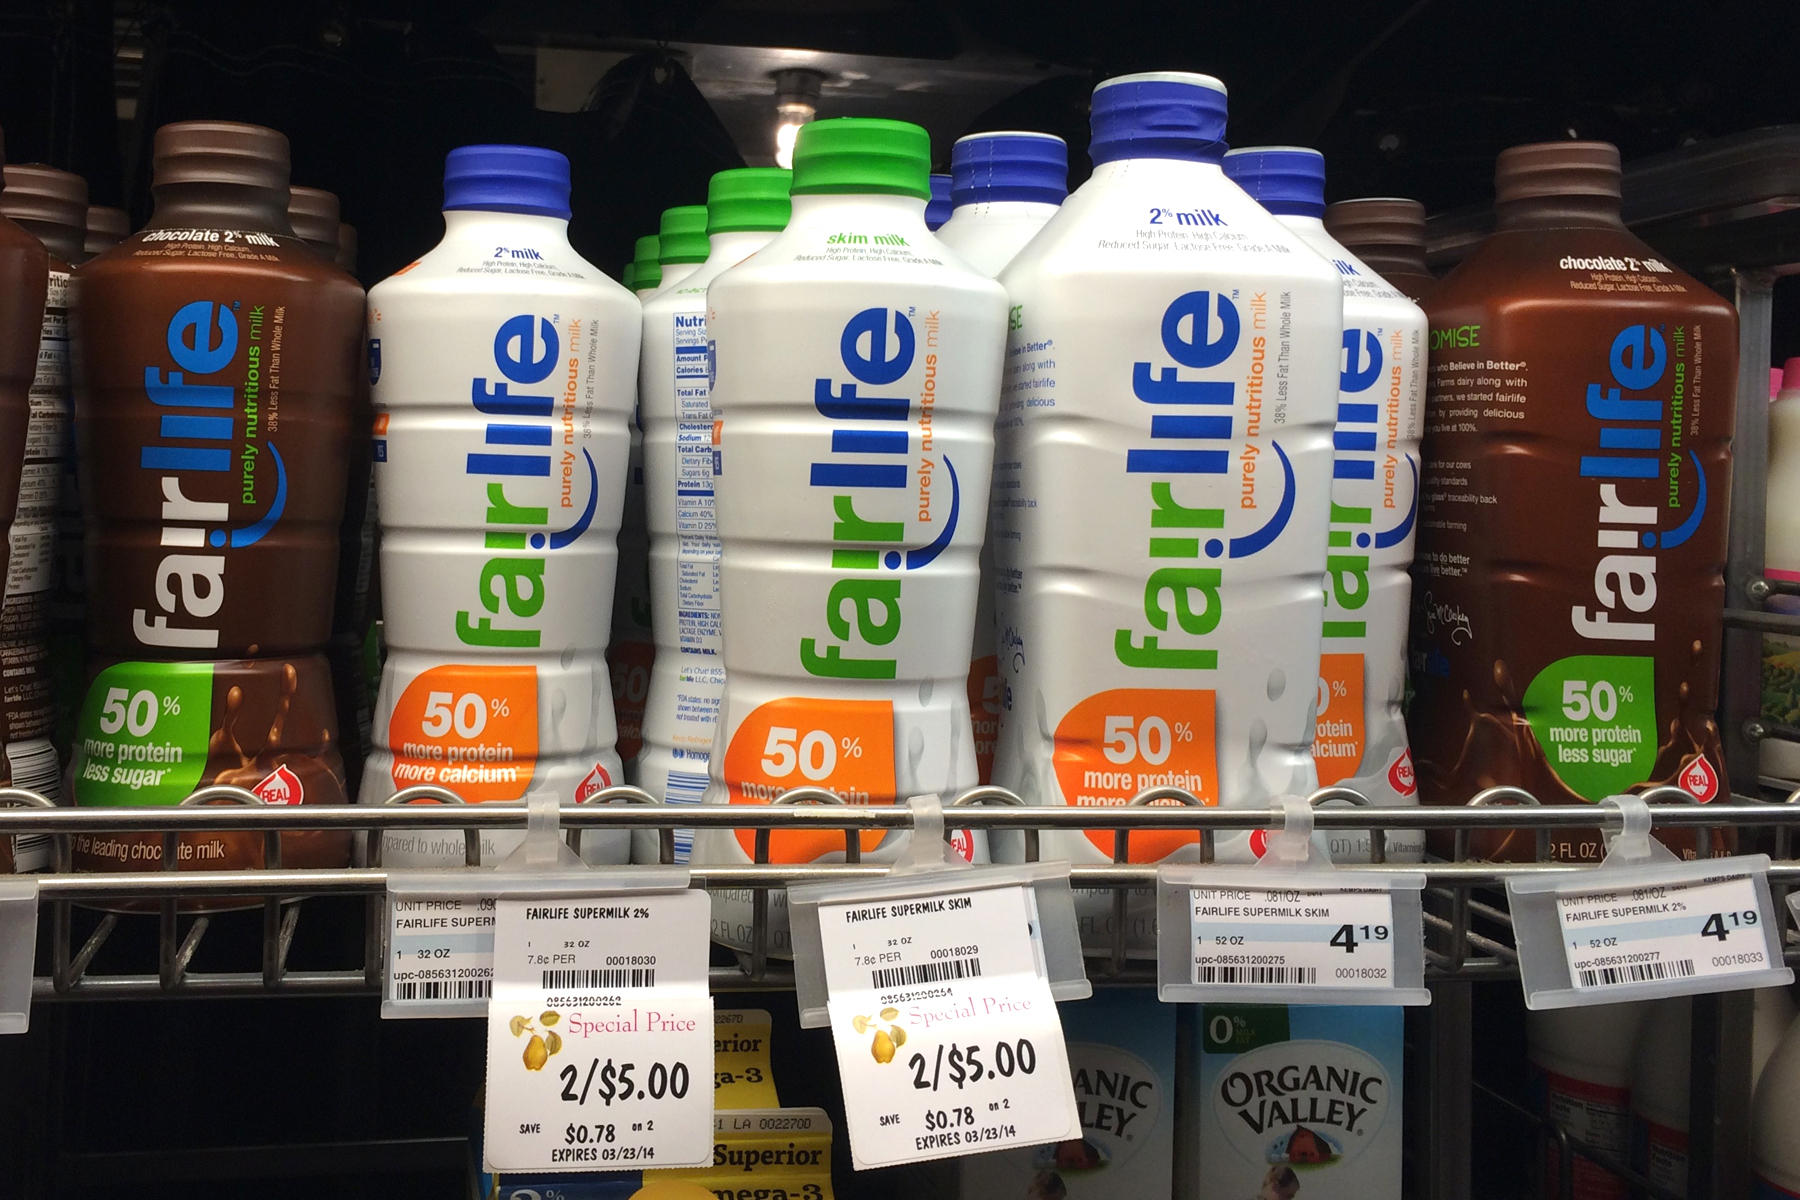 Fairlife milk shown here on sale in minneapolis minn in april is